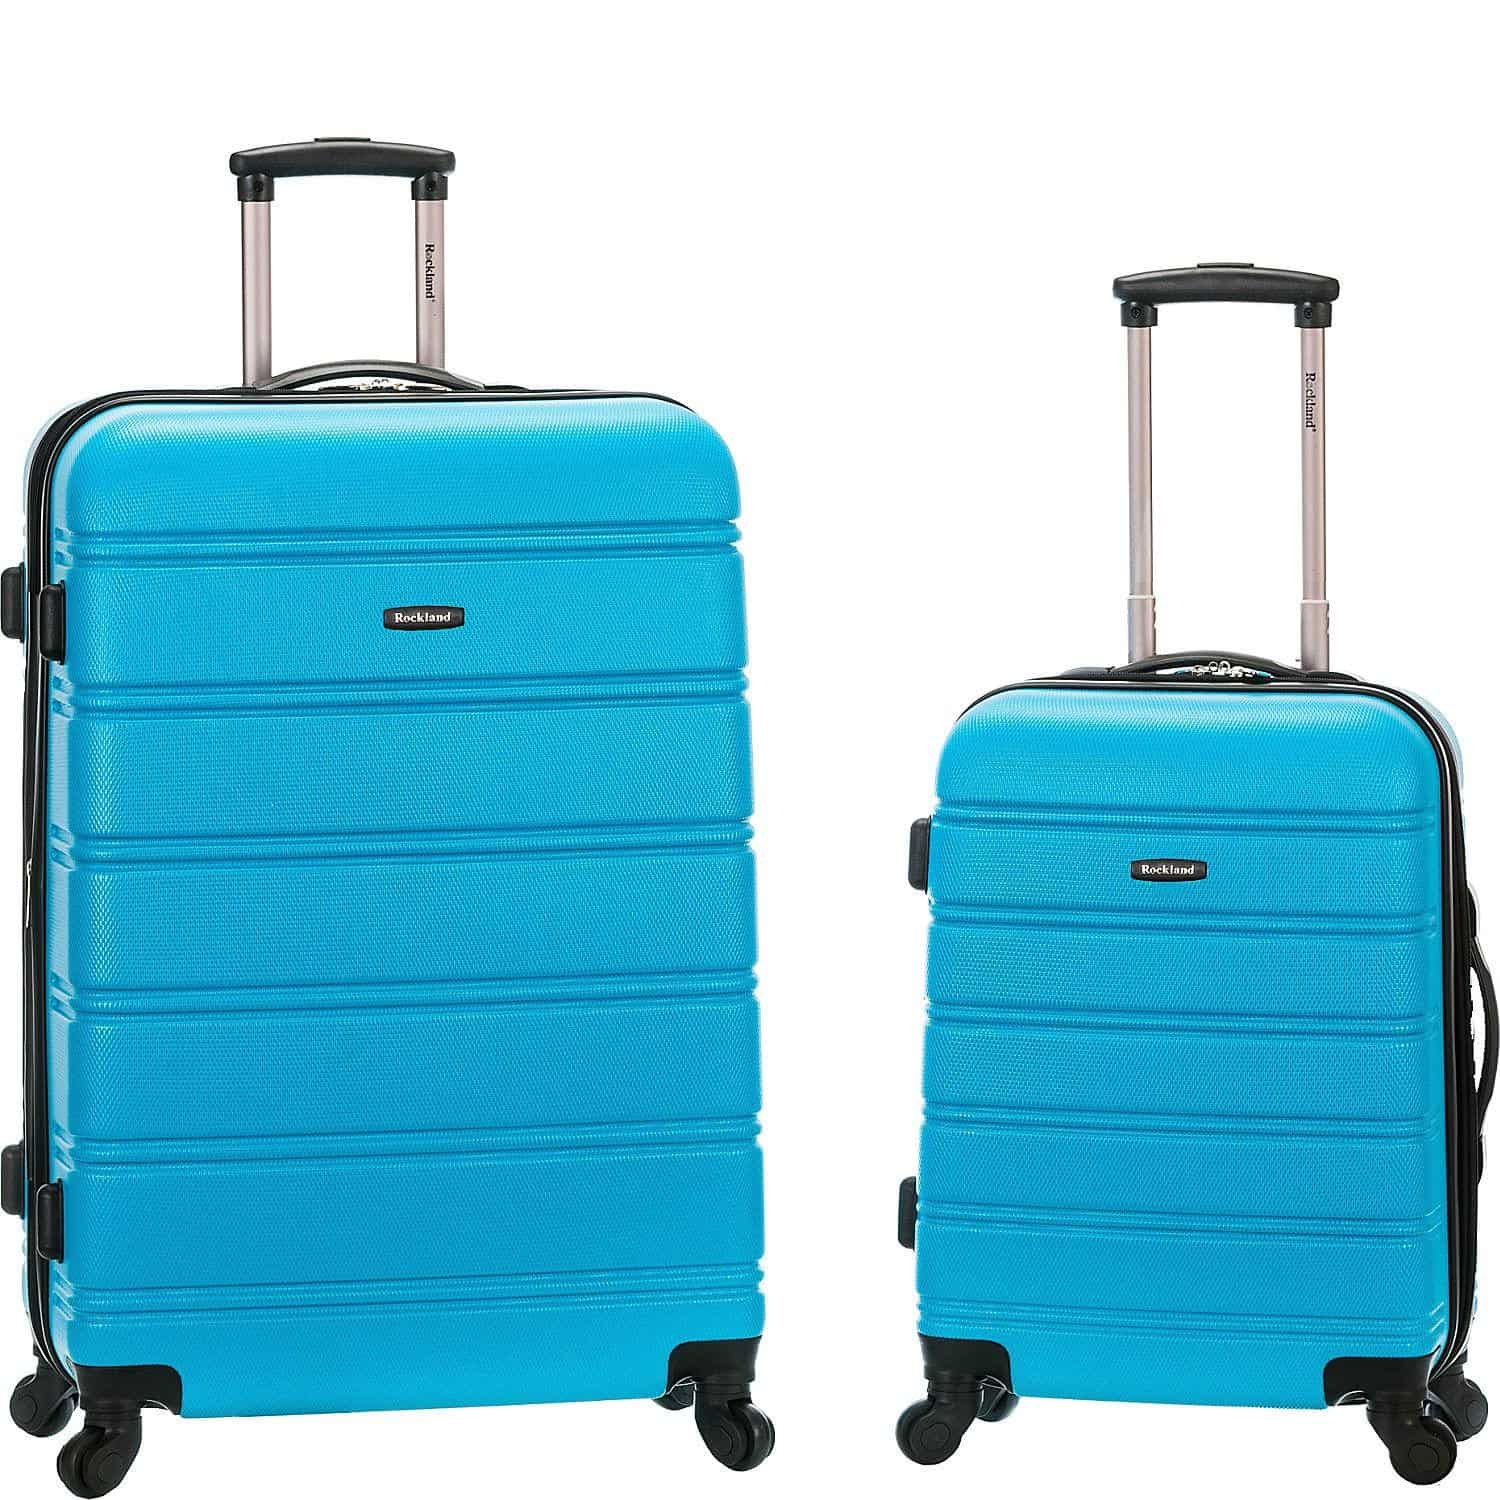 Rockland luggage in bright blue